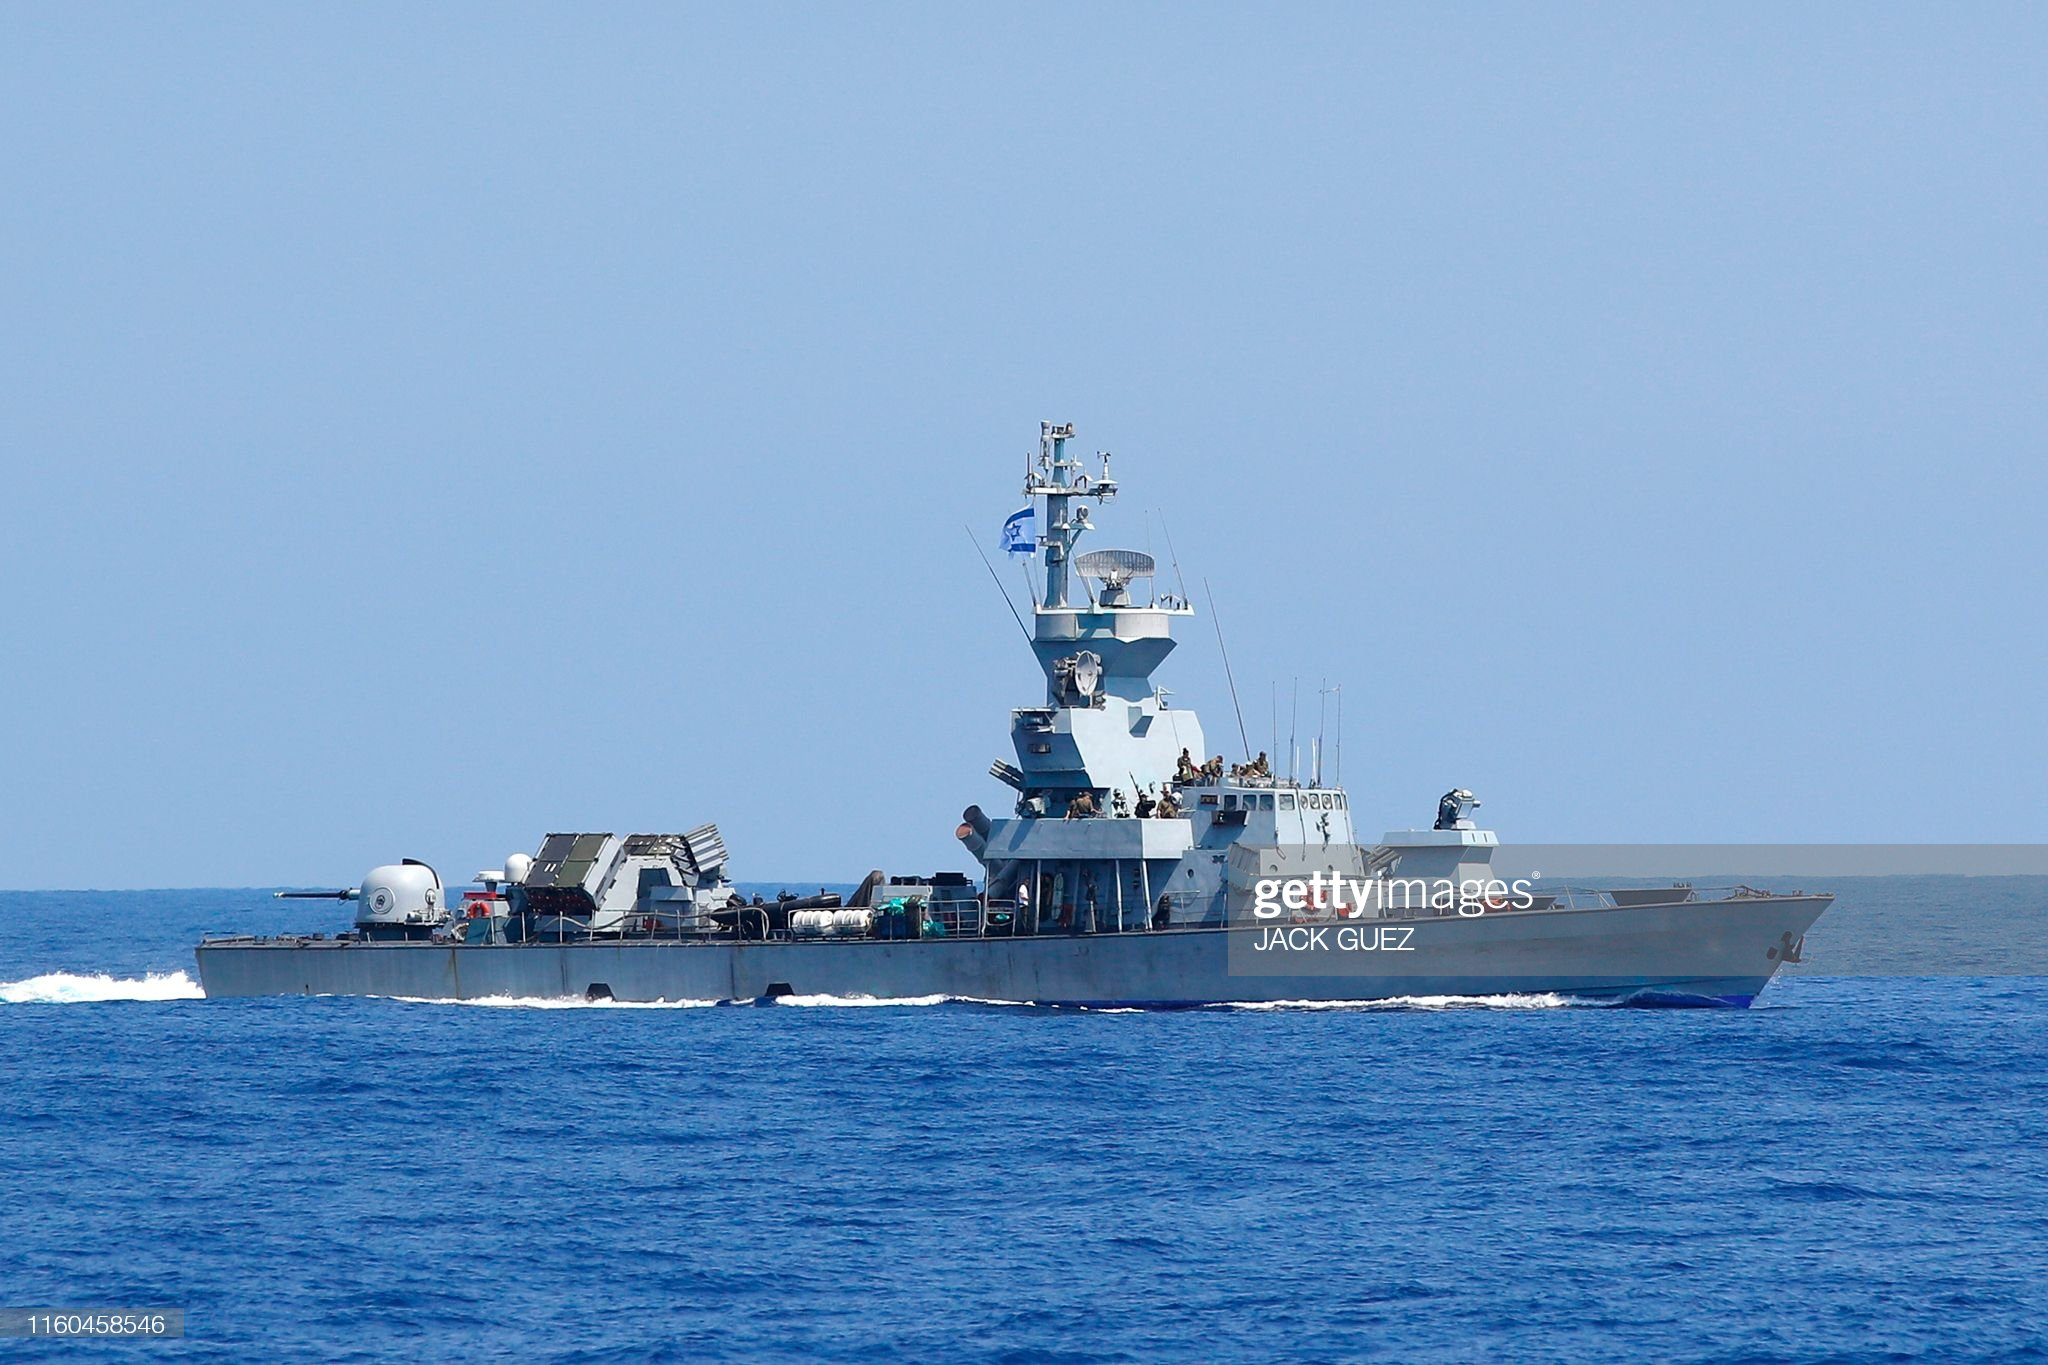 https://media.gettyimages.com/photos/photo-taken-on-august-7-shows-the-israeli-saar-patrol-45-vessel-an-picture-id1160458546?s=2048x2048